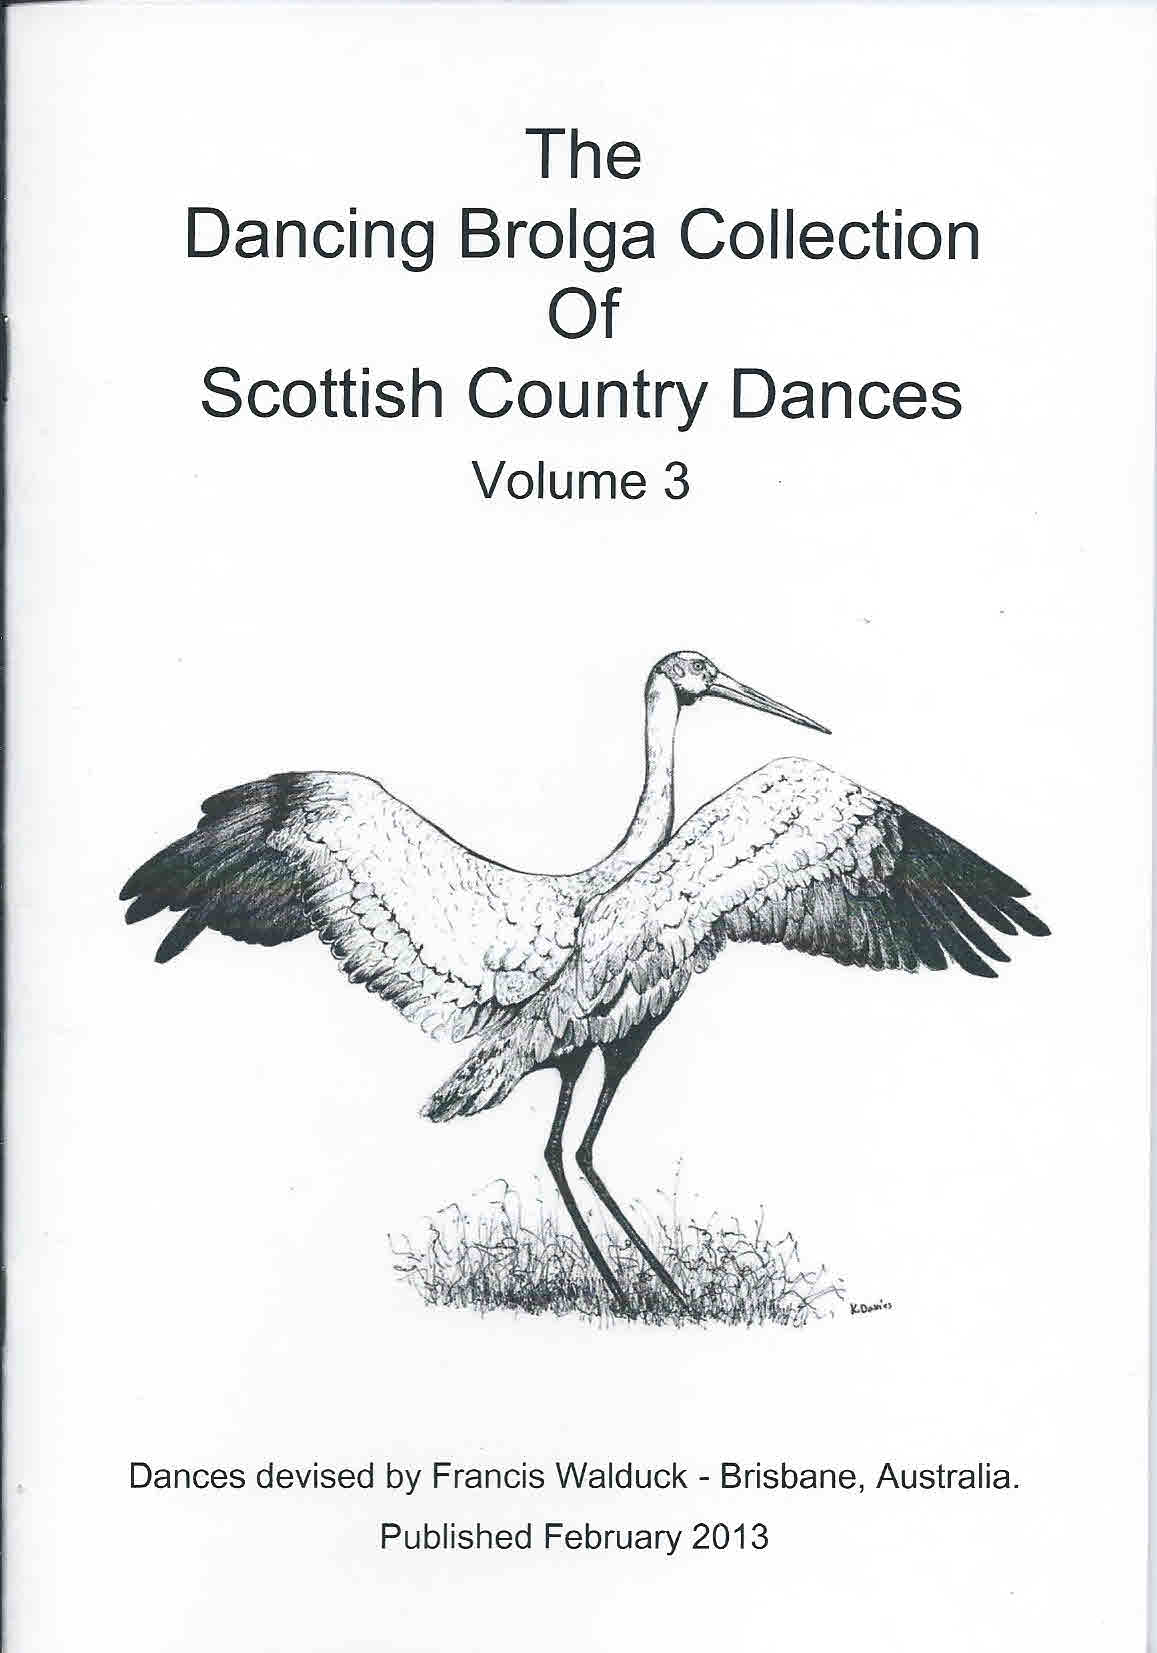 The Dancing Brolga Collection of SCD